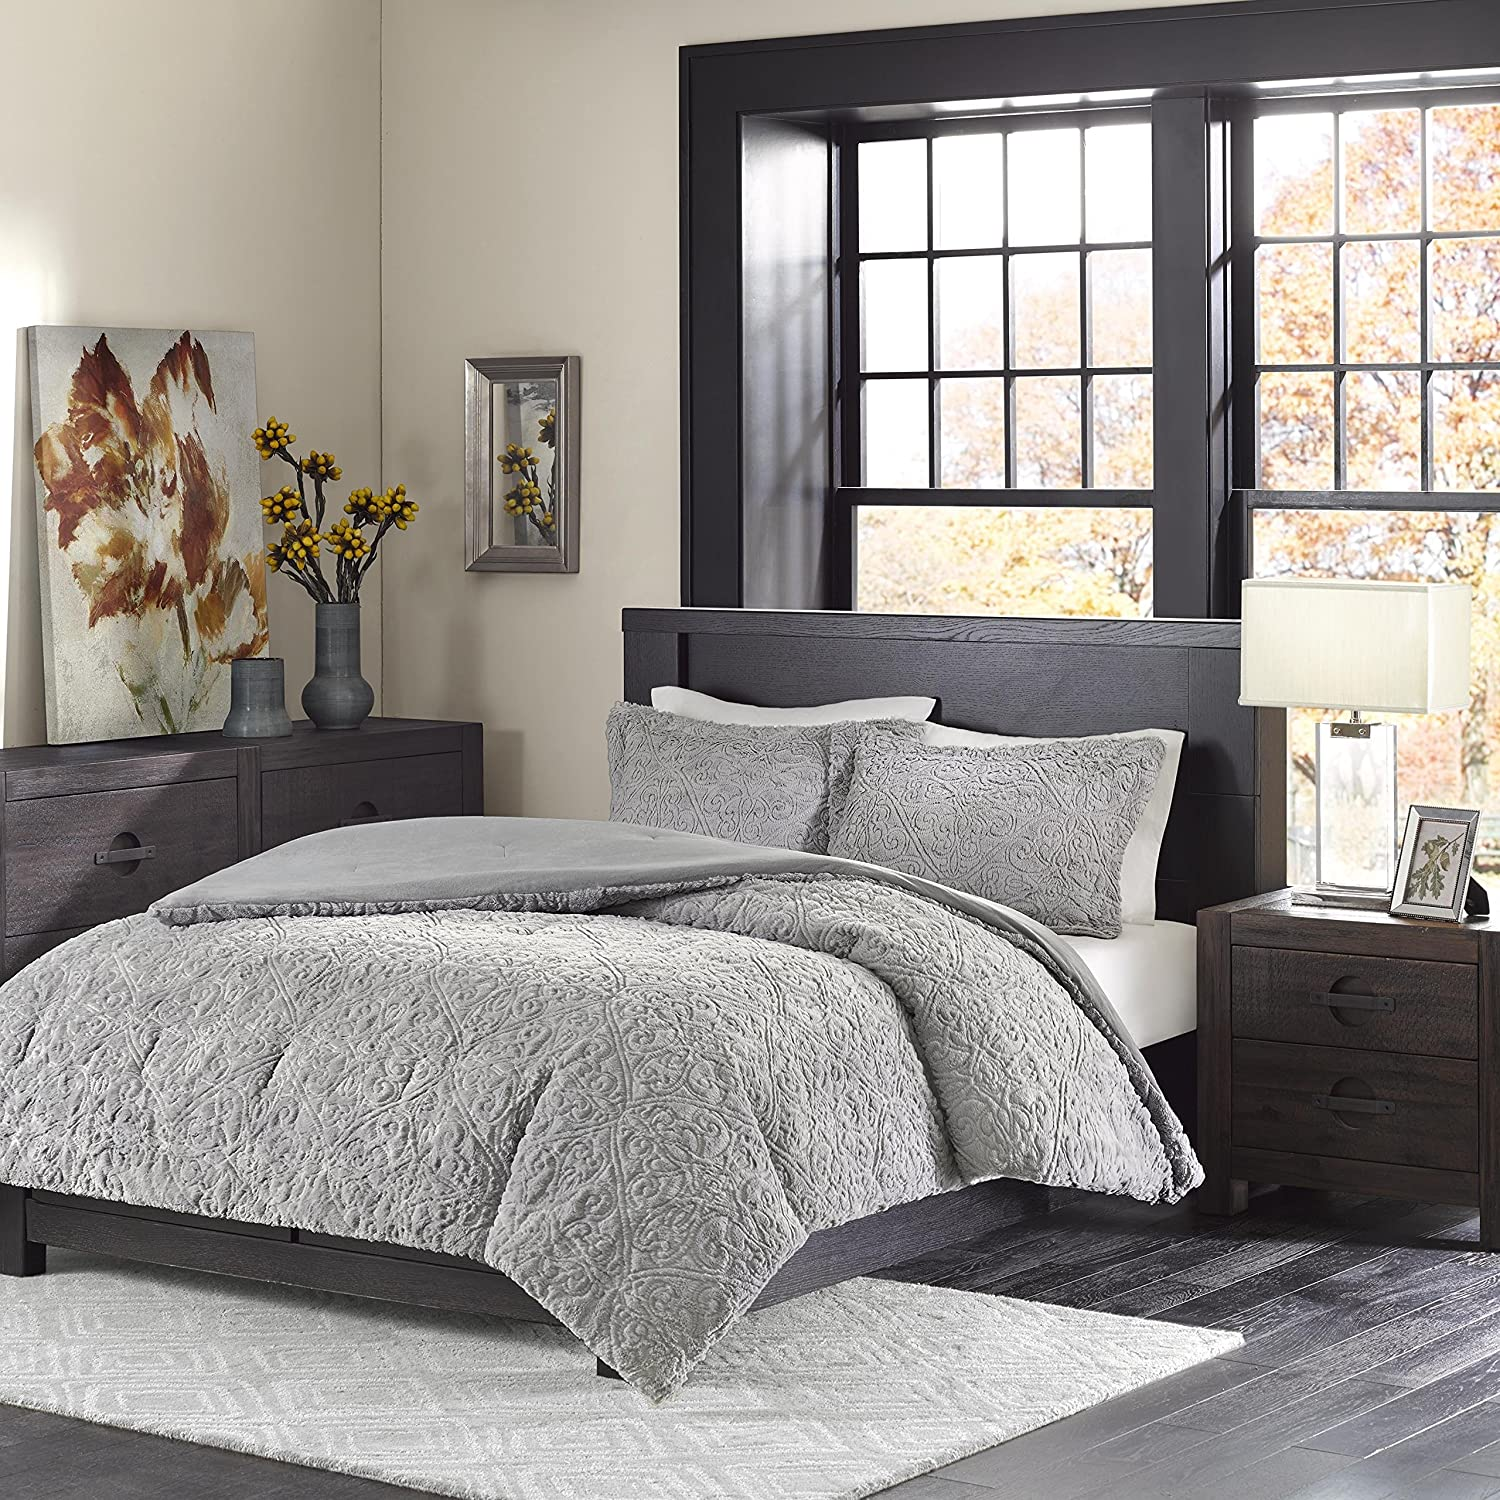 grey set twin style fur faux xl sets casual medallion piece comforters c and comforter bedding